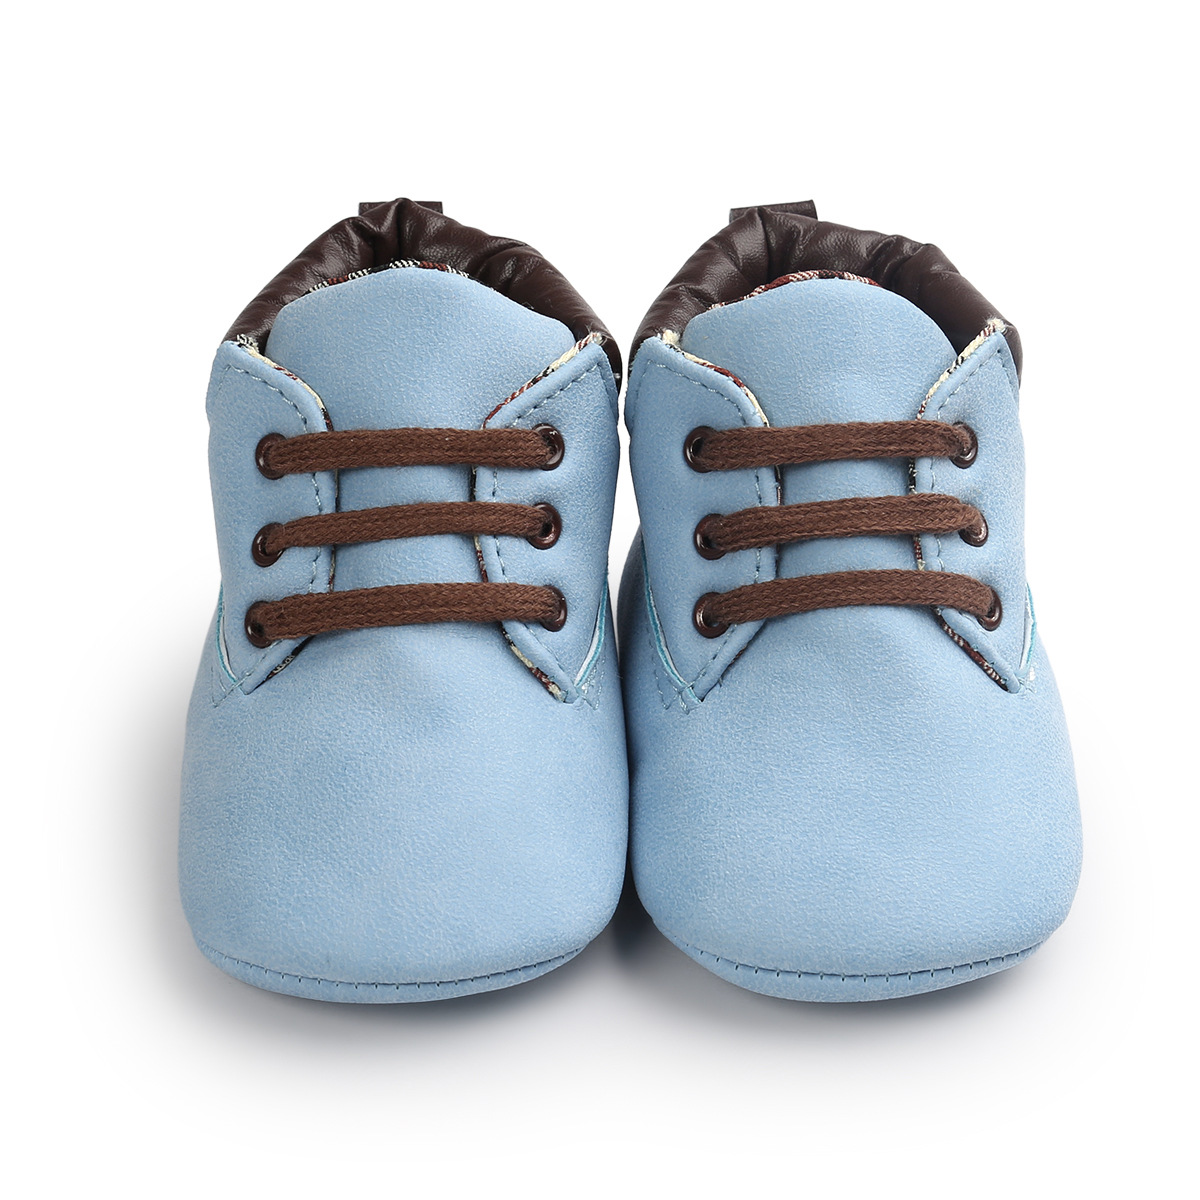 Multicolor Baby boys girls PU leather shoes toddler infant newborn crib moccasins shoes zapatos chaussure para bebes